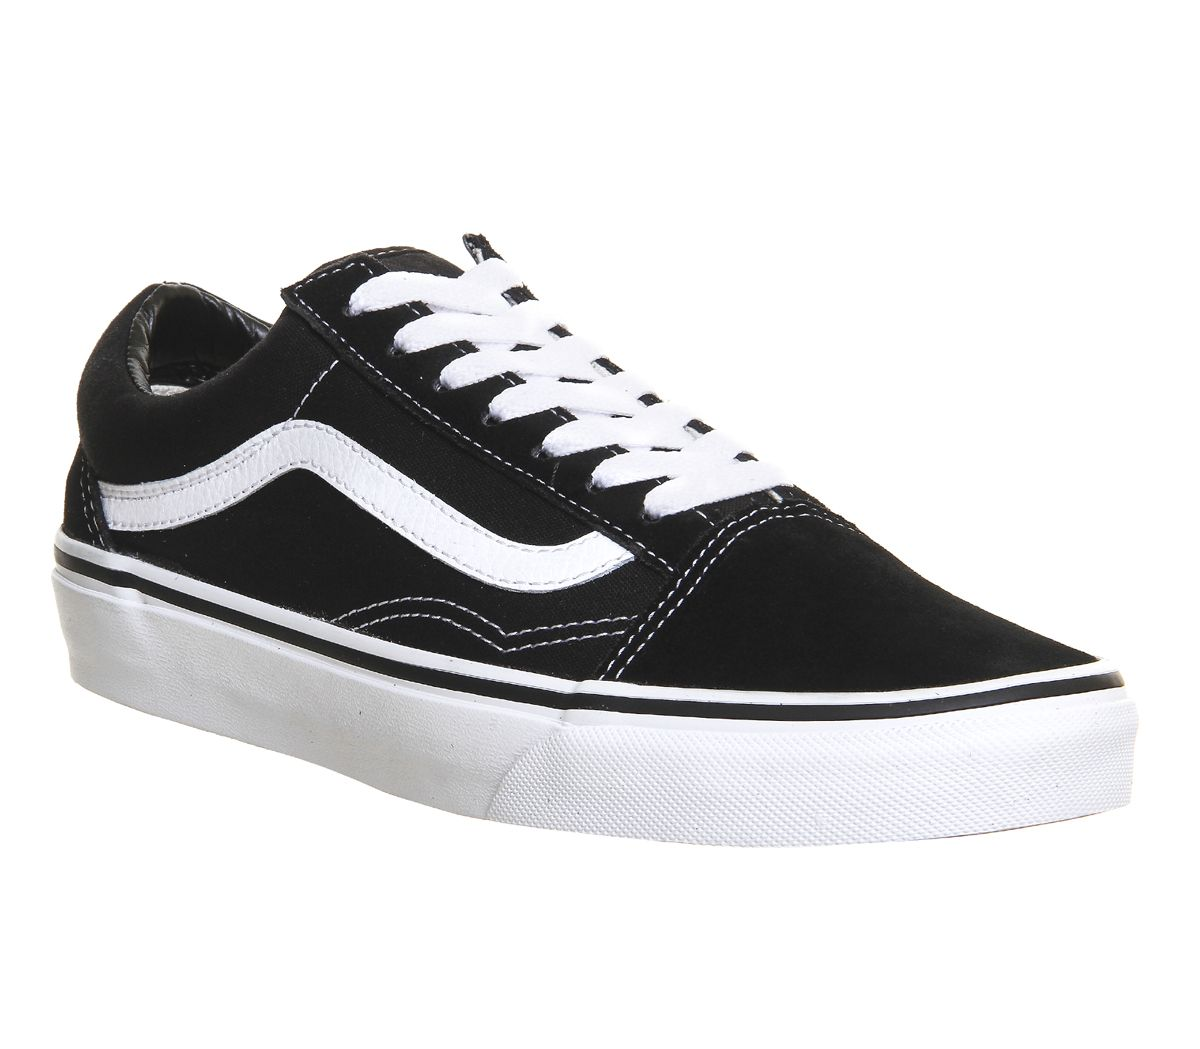 d9694203ae9897 Vans Old Skool Trainers Black - Unisex Sports